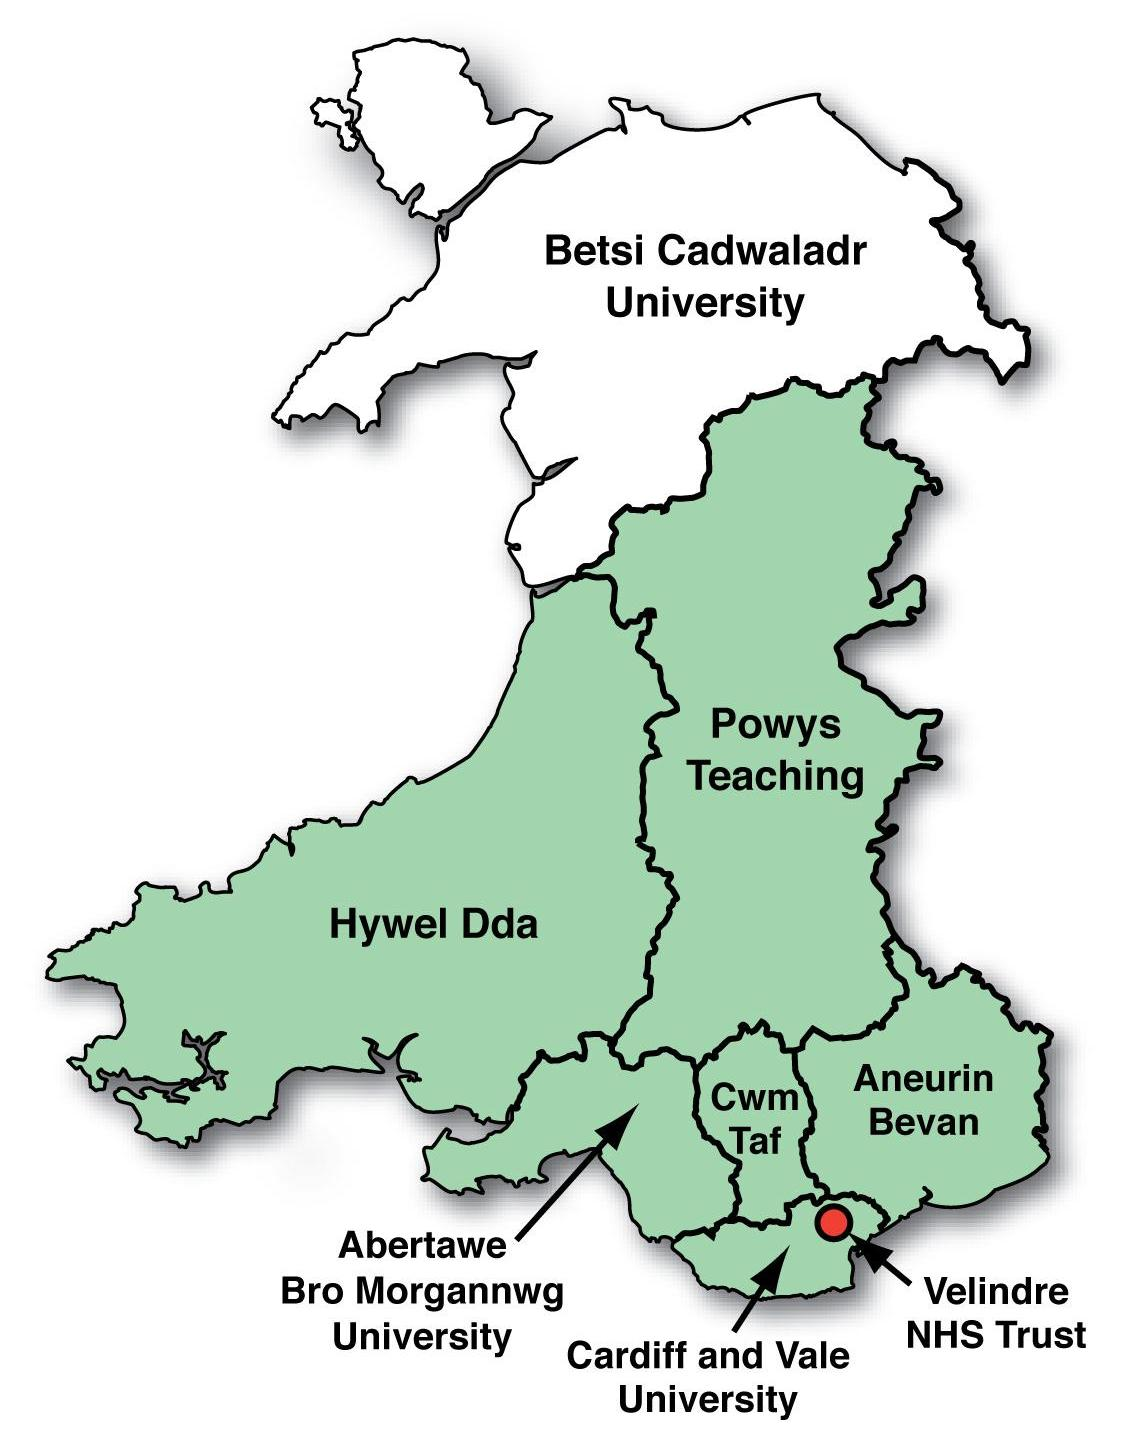 south wales The university of south wales has campuses in cardiff, newport and pontypridd usw is a uk university offering vocationally focused courses and degrees.